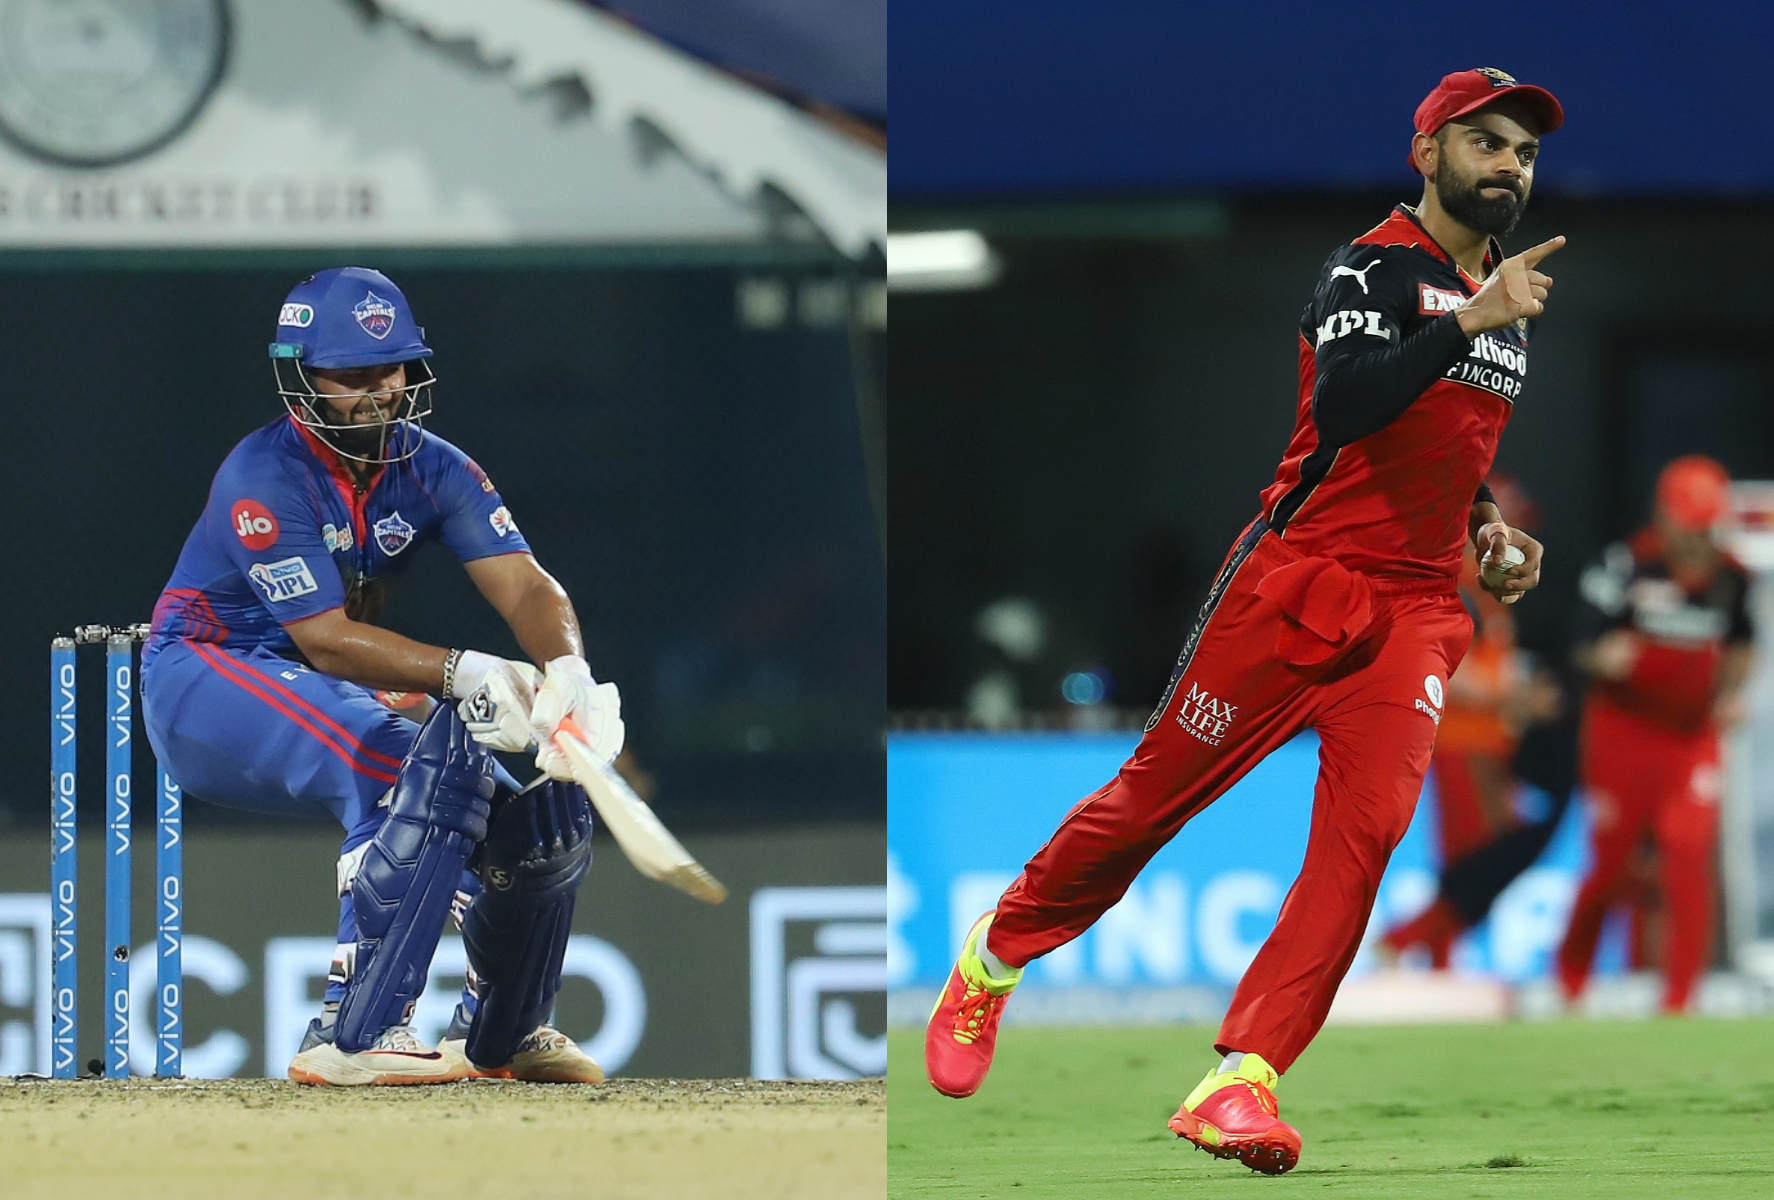 DC are placed no.2 spot in IPL 2021 points table, while RCB are at no.3 | IPL-BCCI